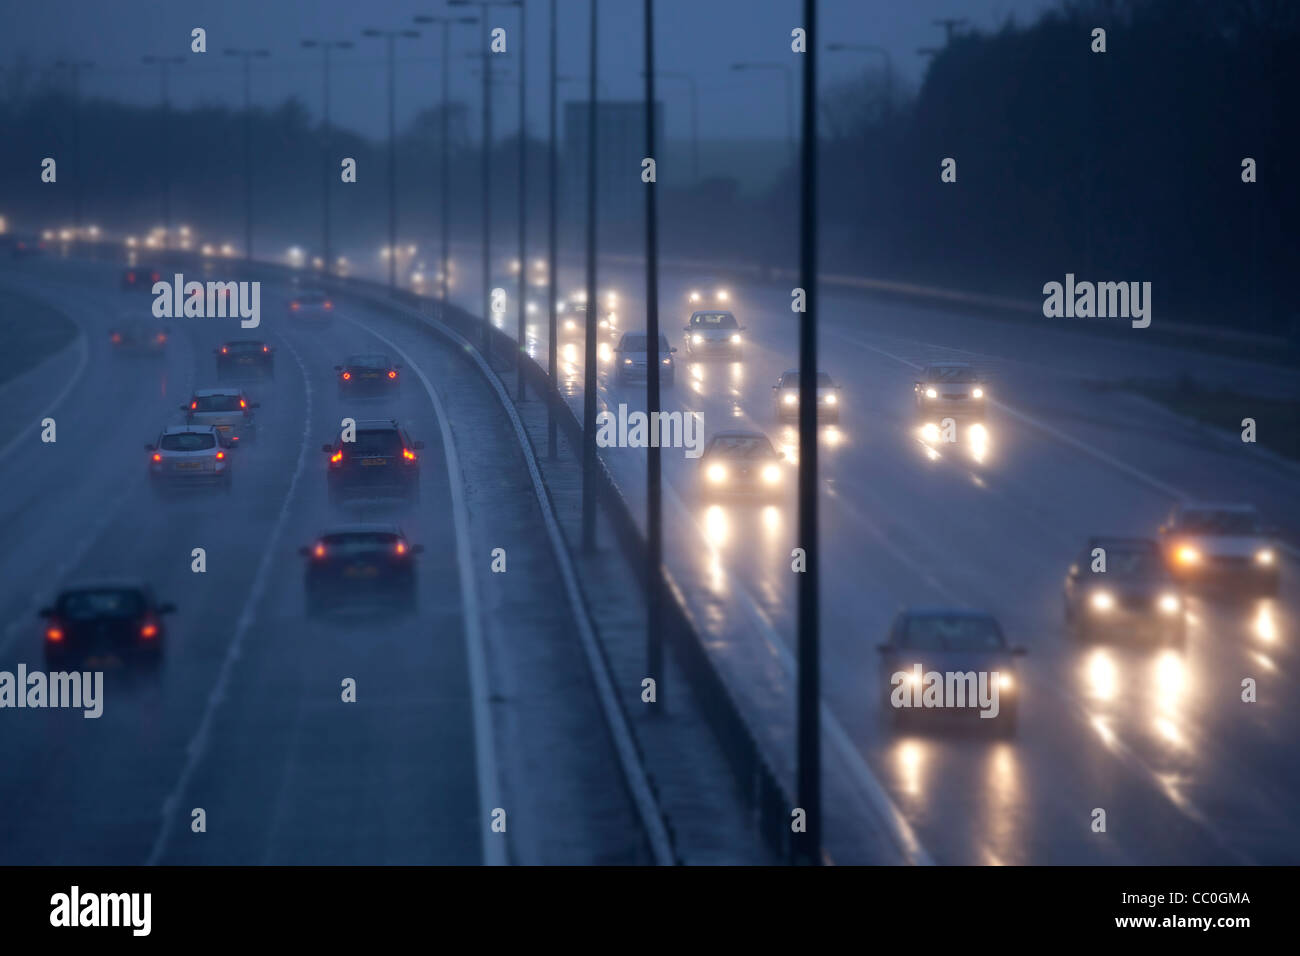 Cars and traffic on a wet raining evening on uk motorway, Driving in dangerous winter conditions. - Stock Image